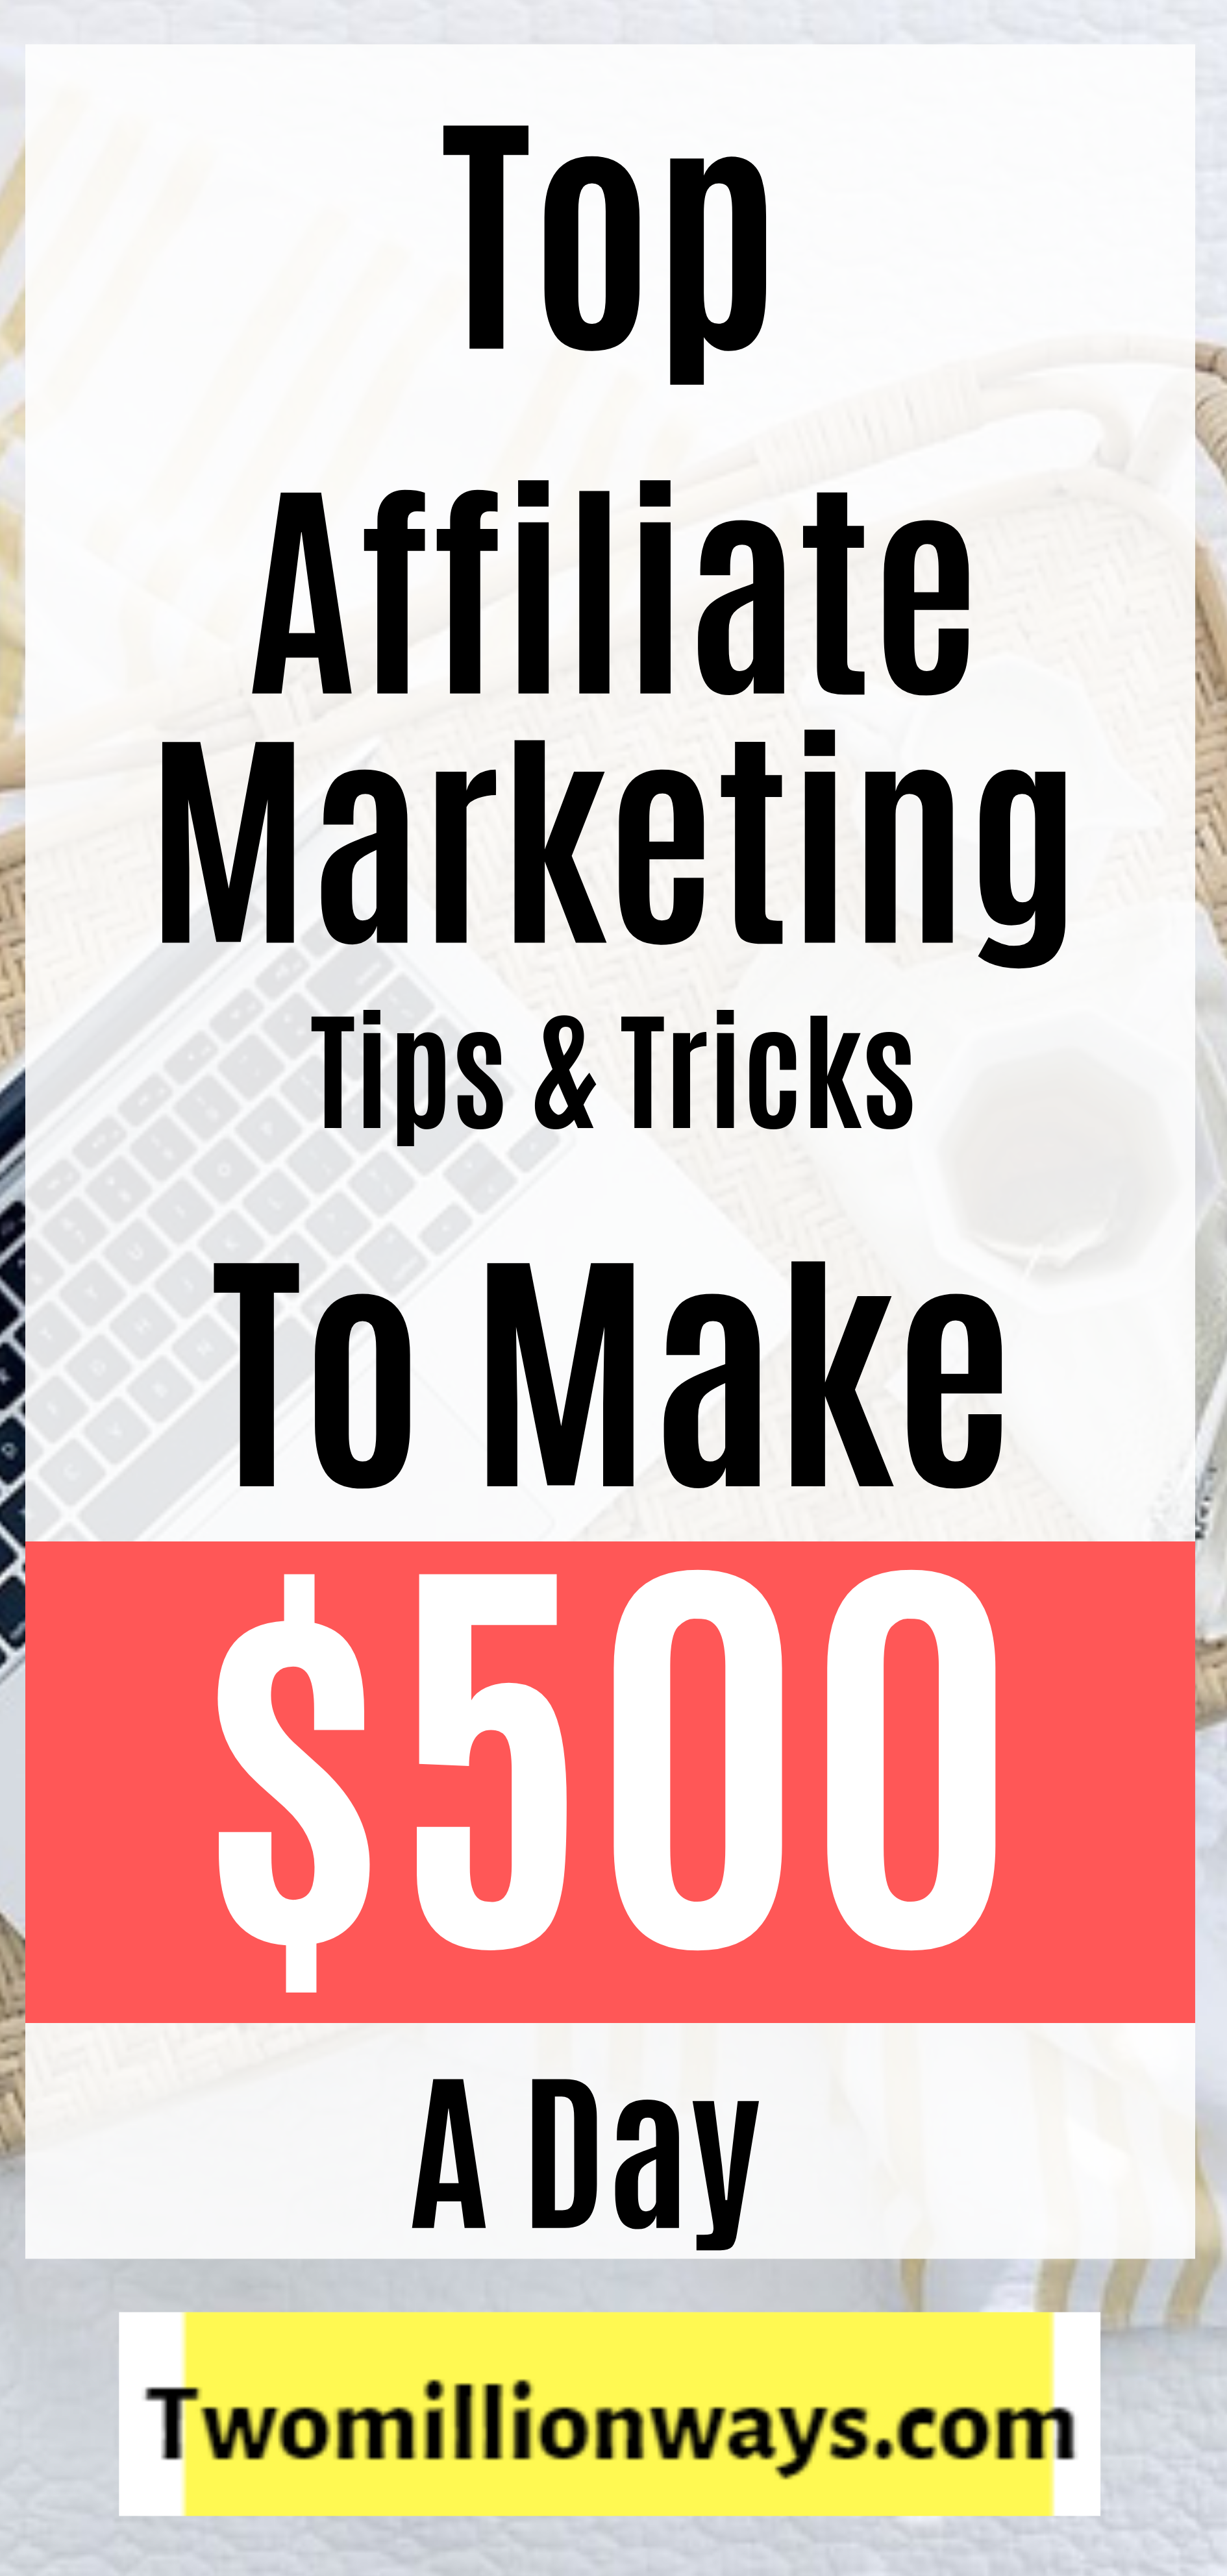 Affiliate Marketing for Beginners That Works 100 Percent